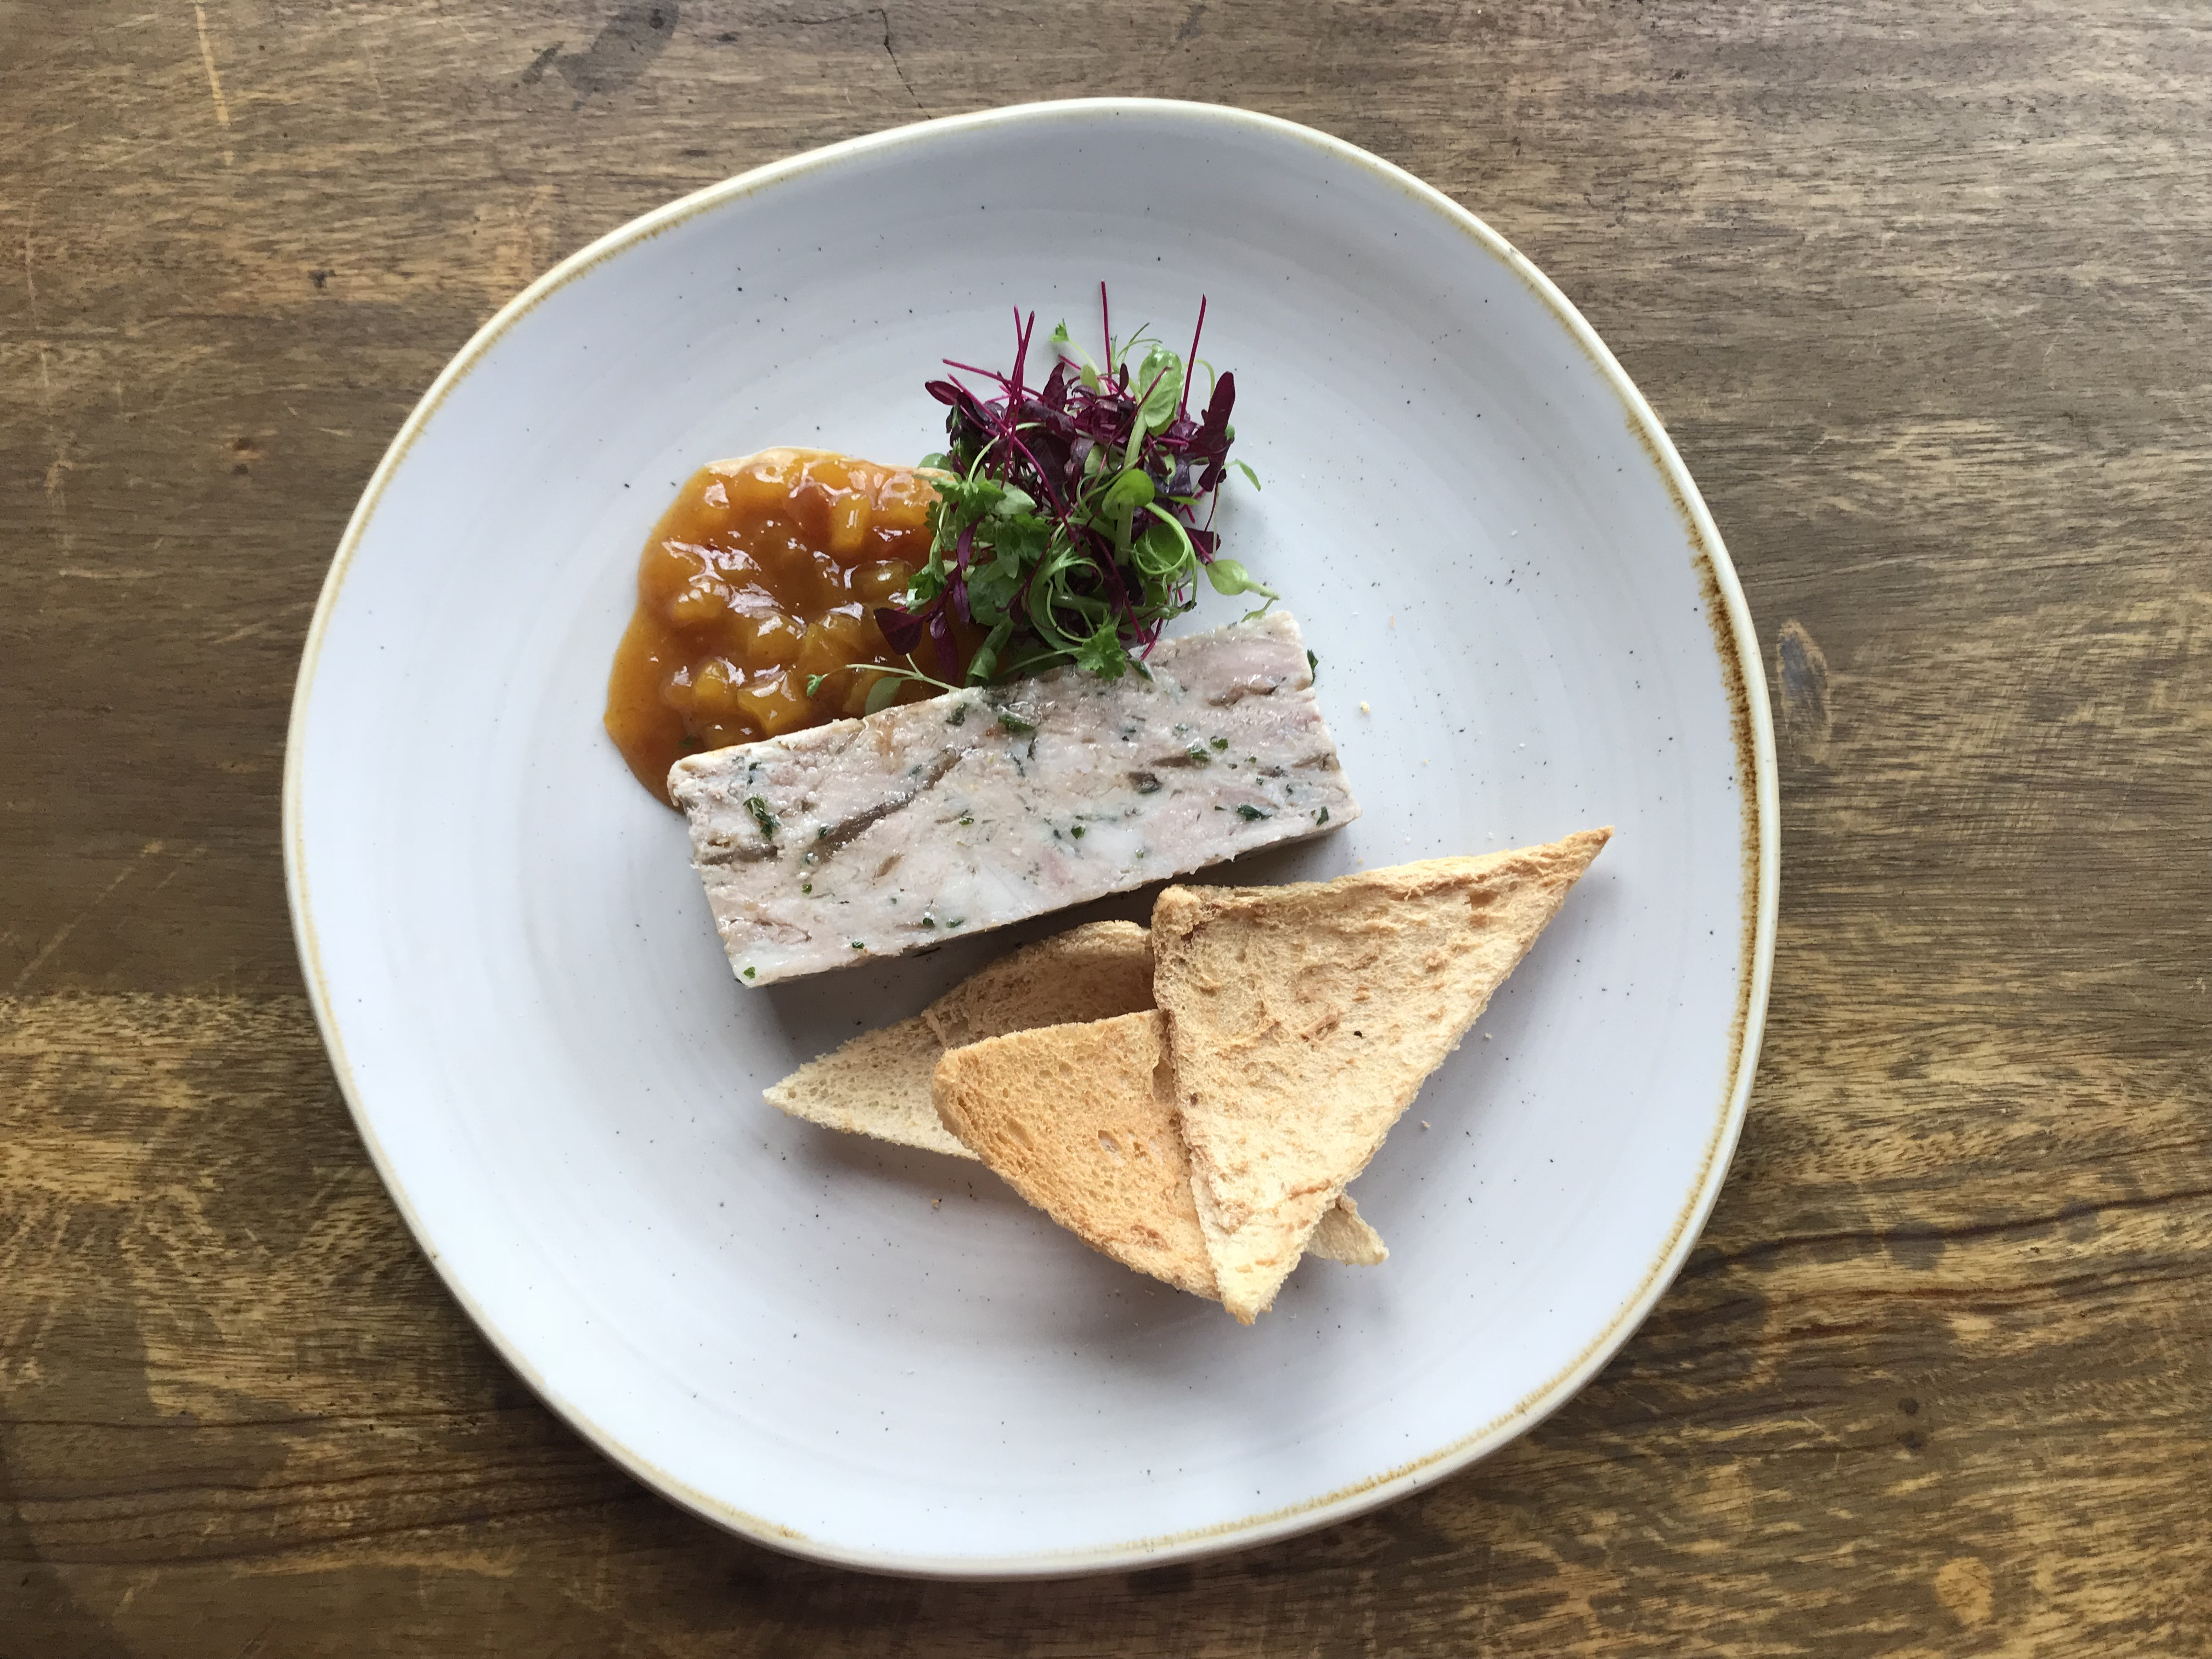 Smoked Chicken & Herb Terrine